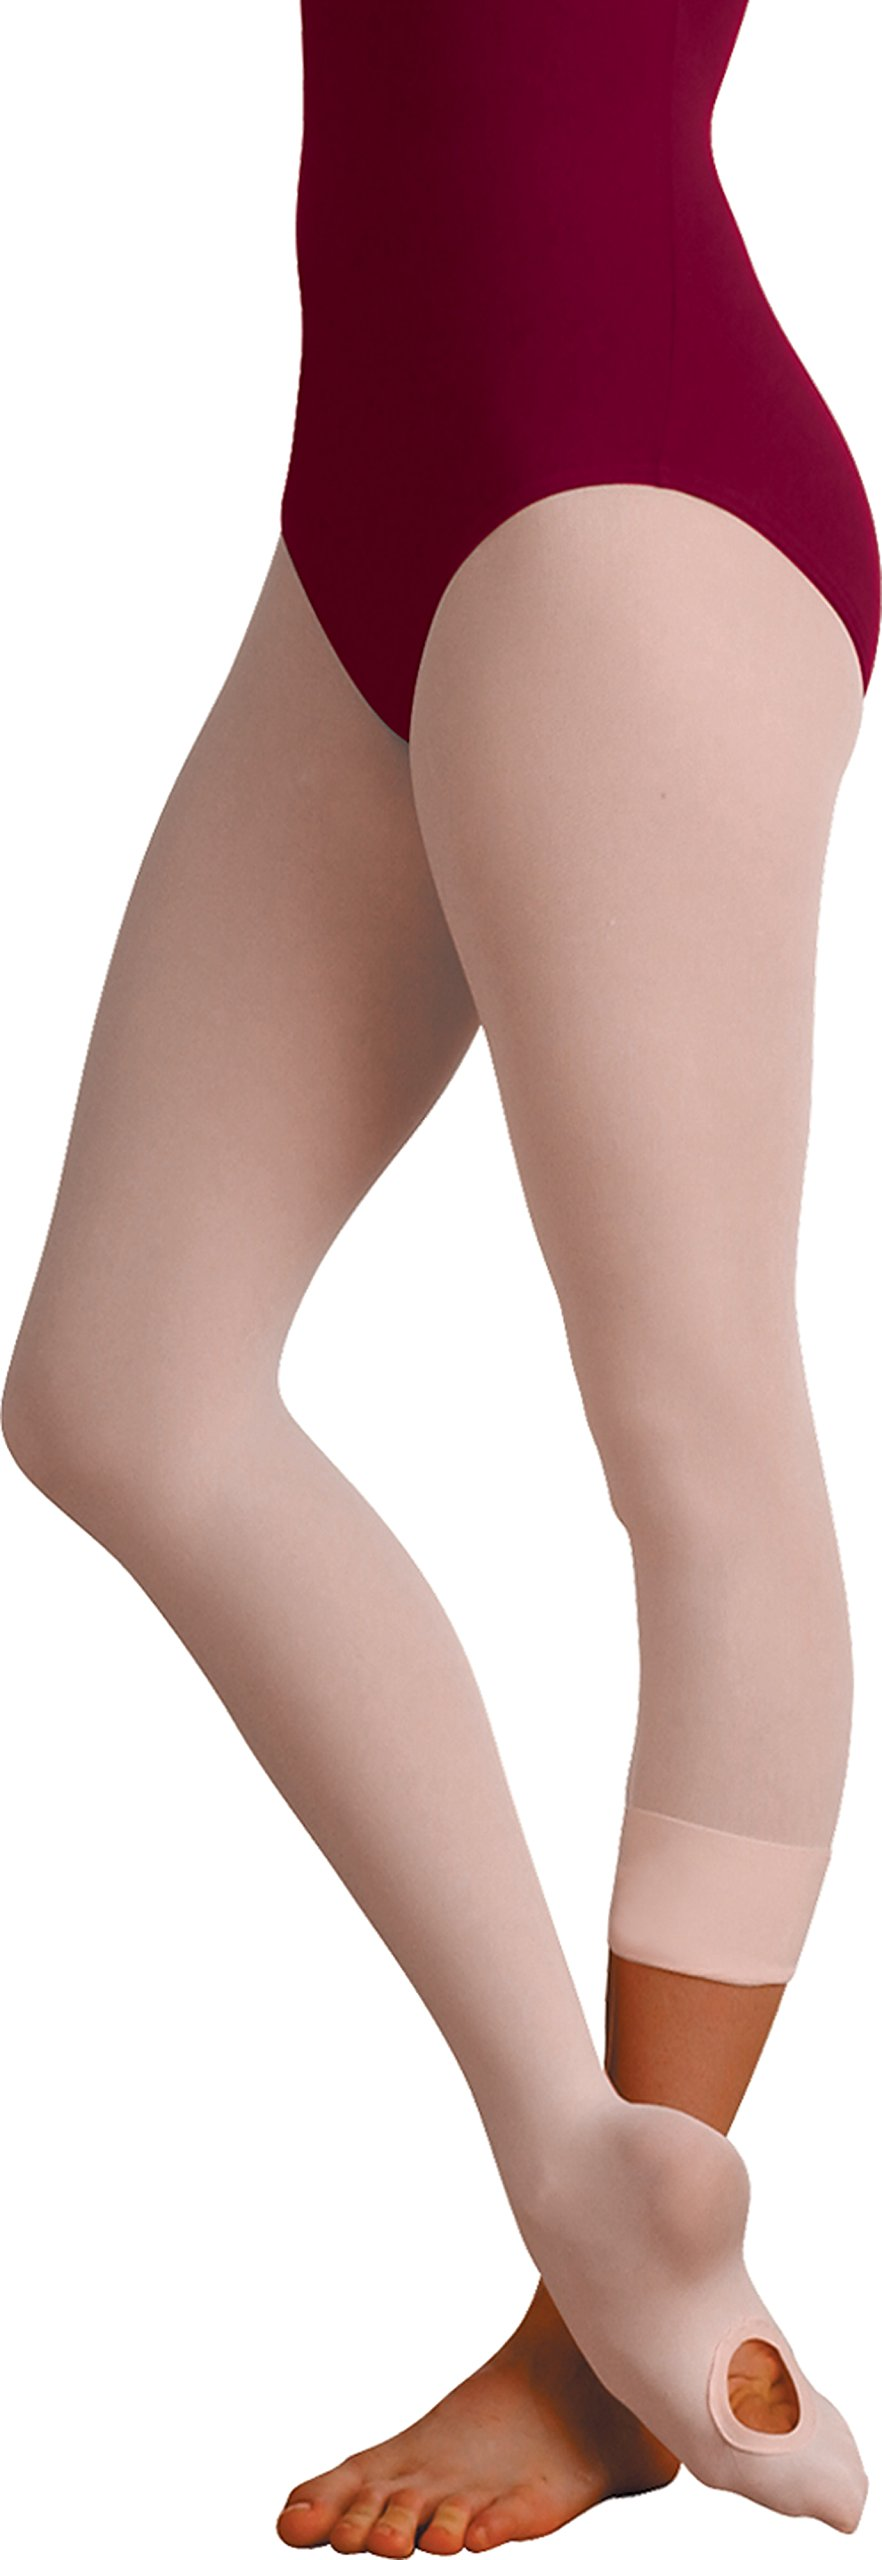 Body Wrappers Women's Total Strech Convertible Tights - A31, Theatrical Pink, Small/Medium